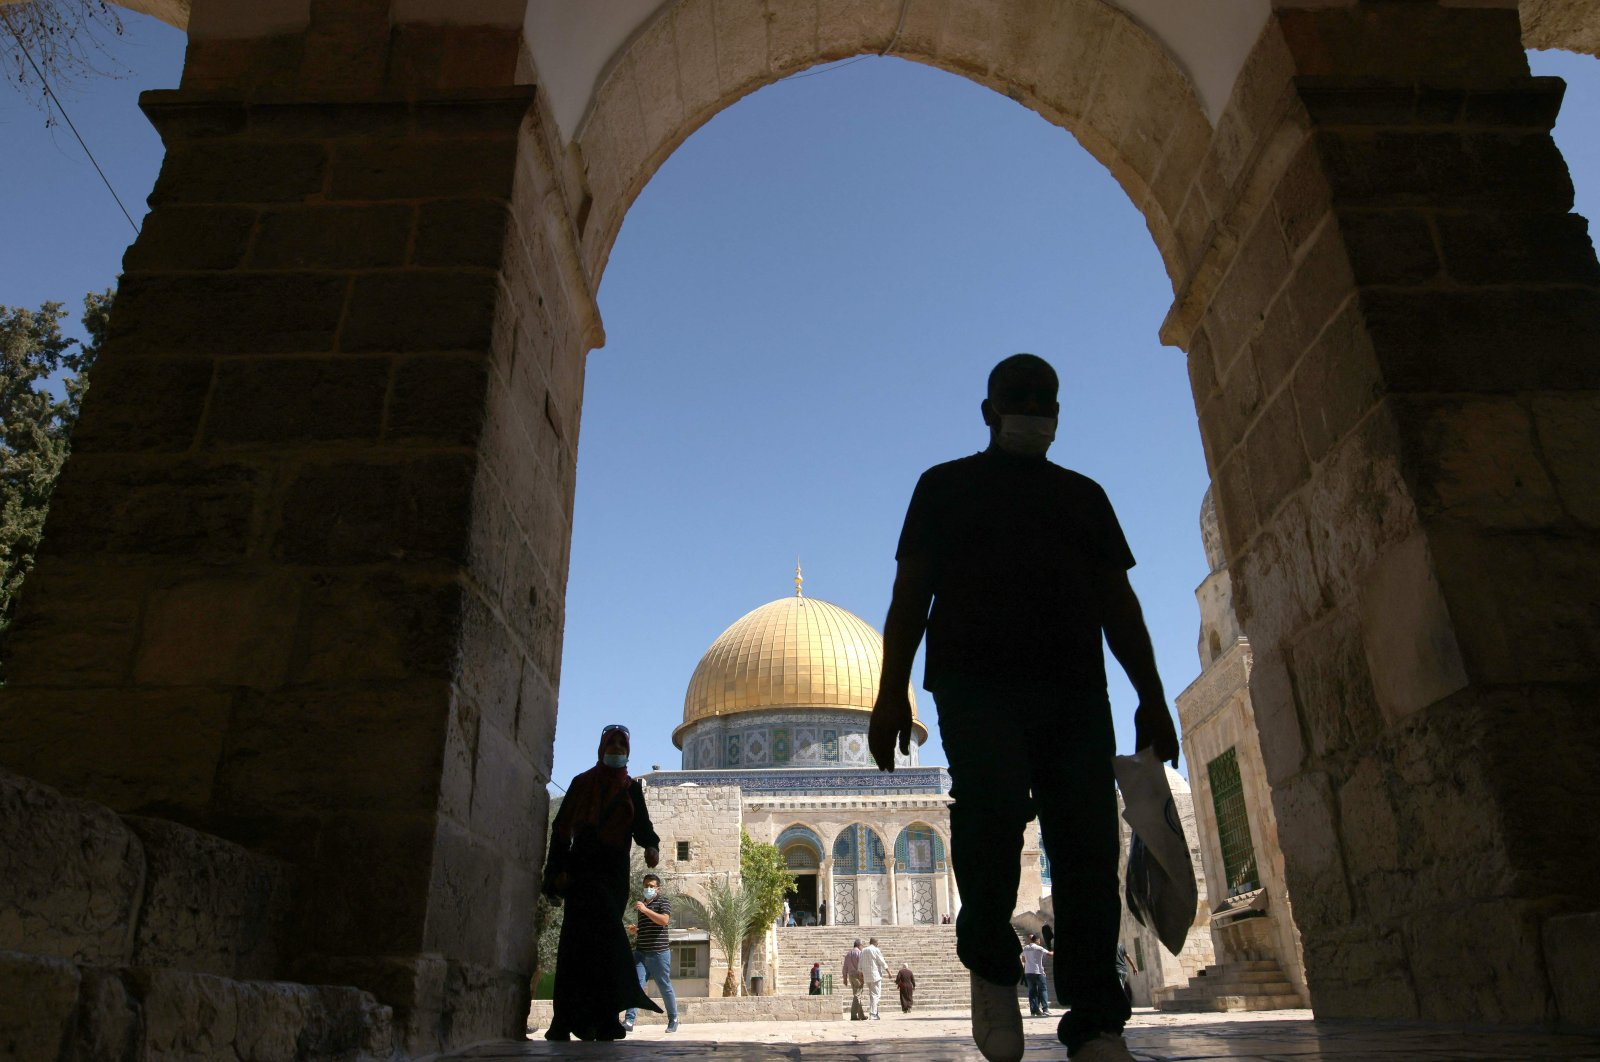 Palestinians are pictured in front of the Dome of the Rock shrine at the Al-Aqsa Mosque compound in the Old City, East Jerusalem, occupied Palestine, Oct. 7, 2021. (AFP Photo)